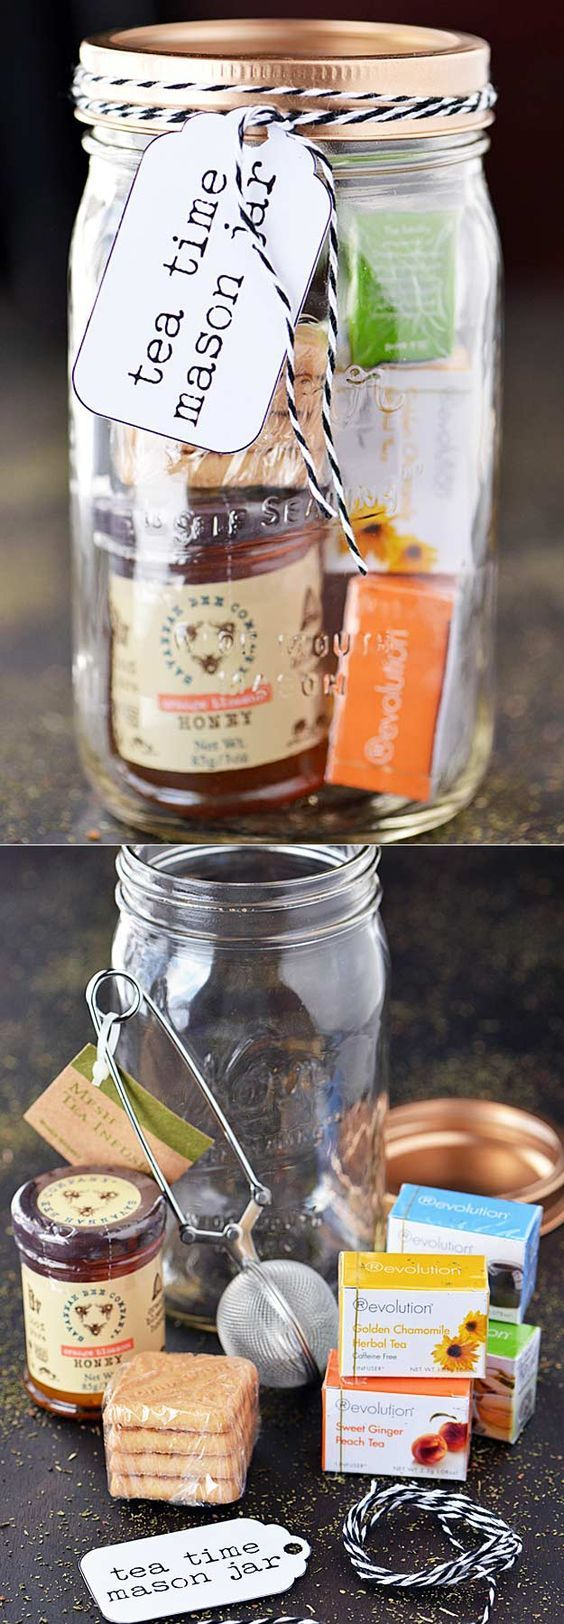 53 Coolest DIY Mason Jar Gifts + Other Fun Ideas in A Jar | Geschenk